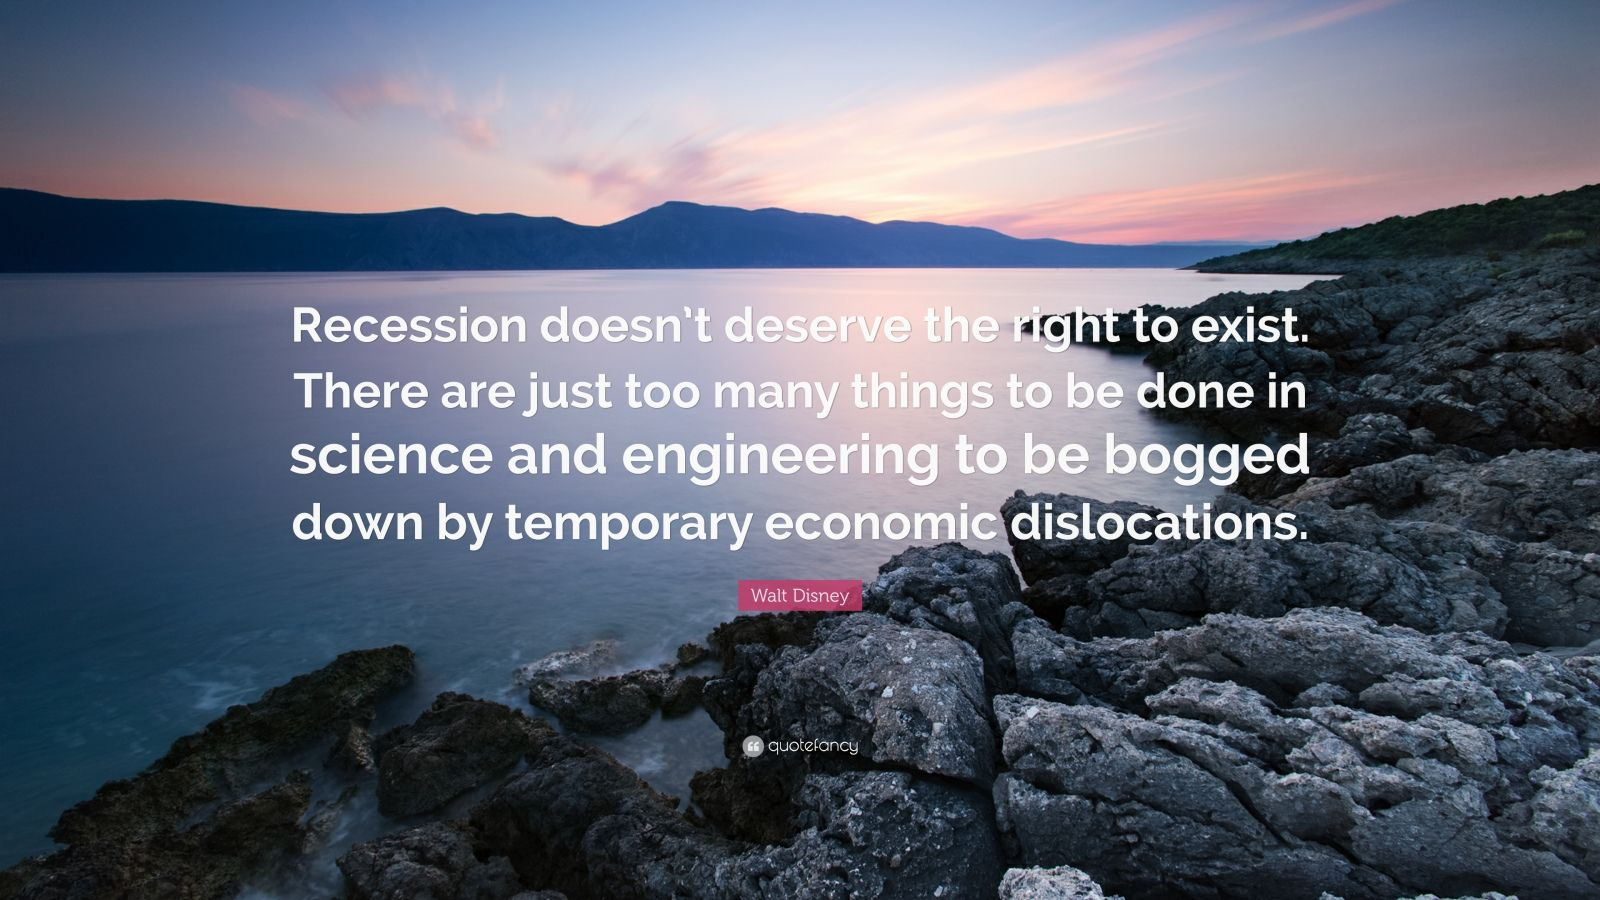 """Walt Disney Quote: """"Recession doesn't deserve the right to exist. There are just too many things to be done in science and engineering to be bogged down by temporary economic dislocations."""""""